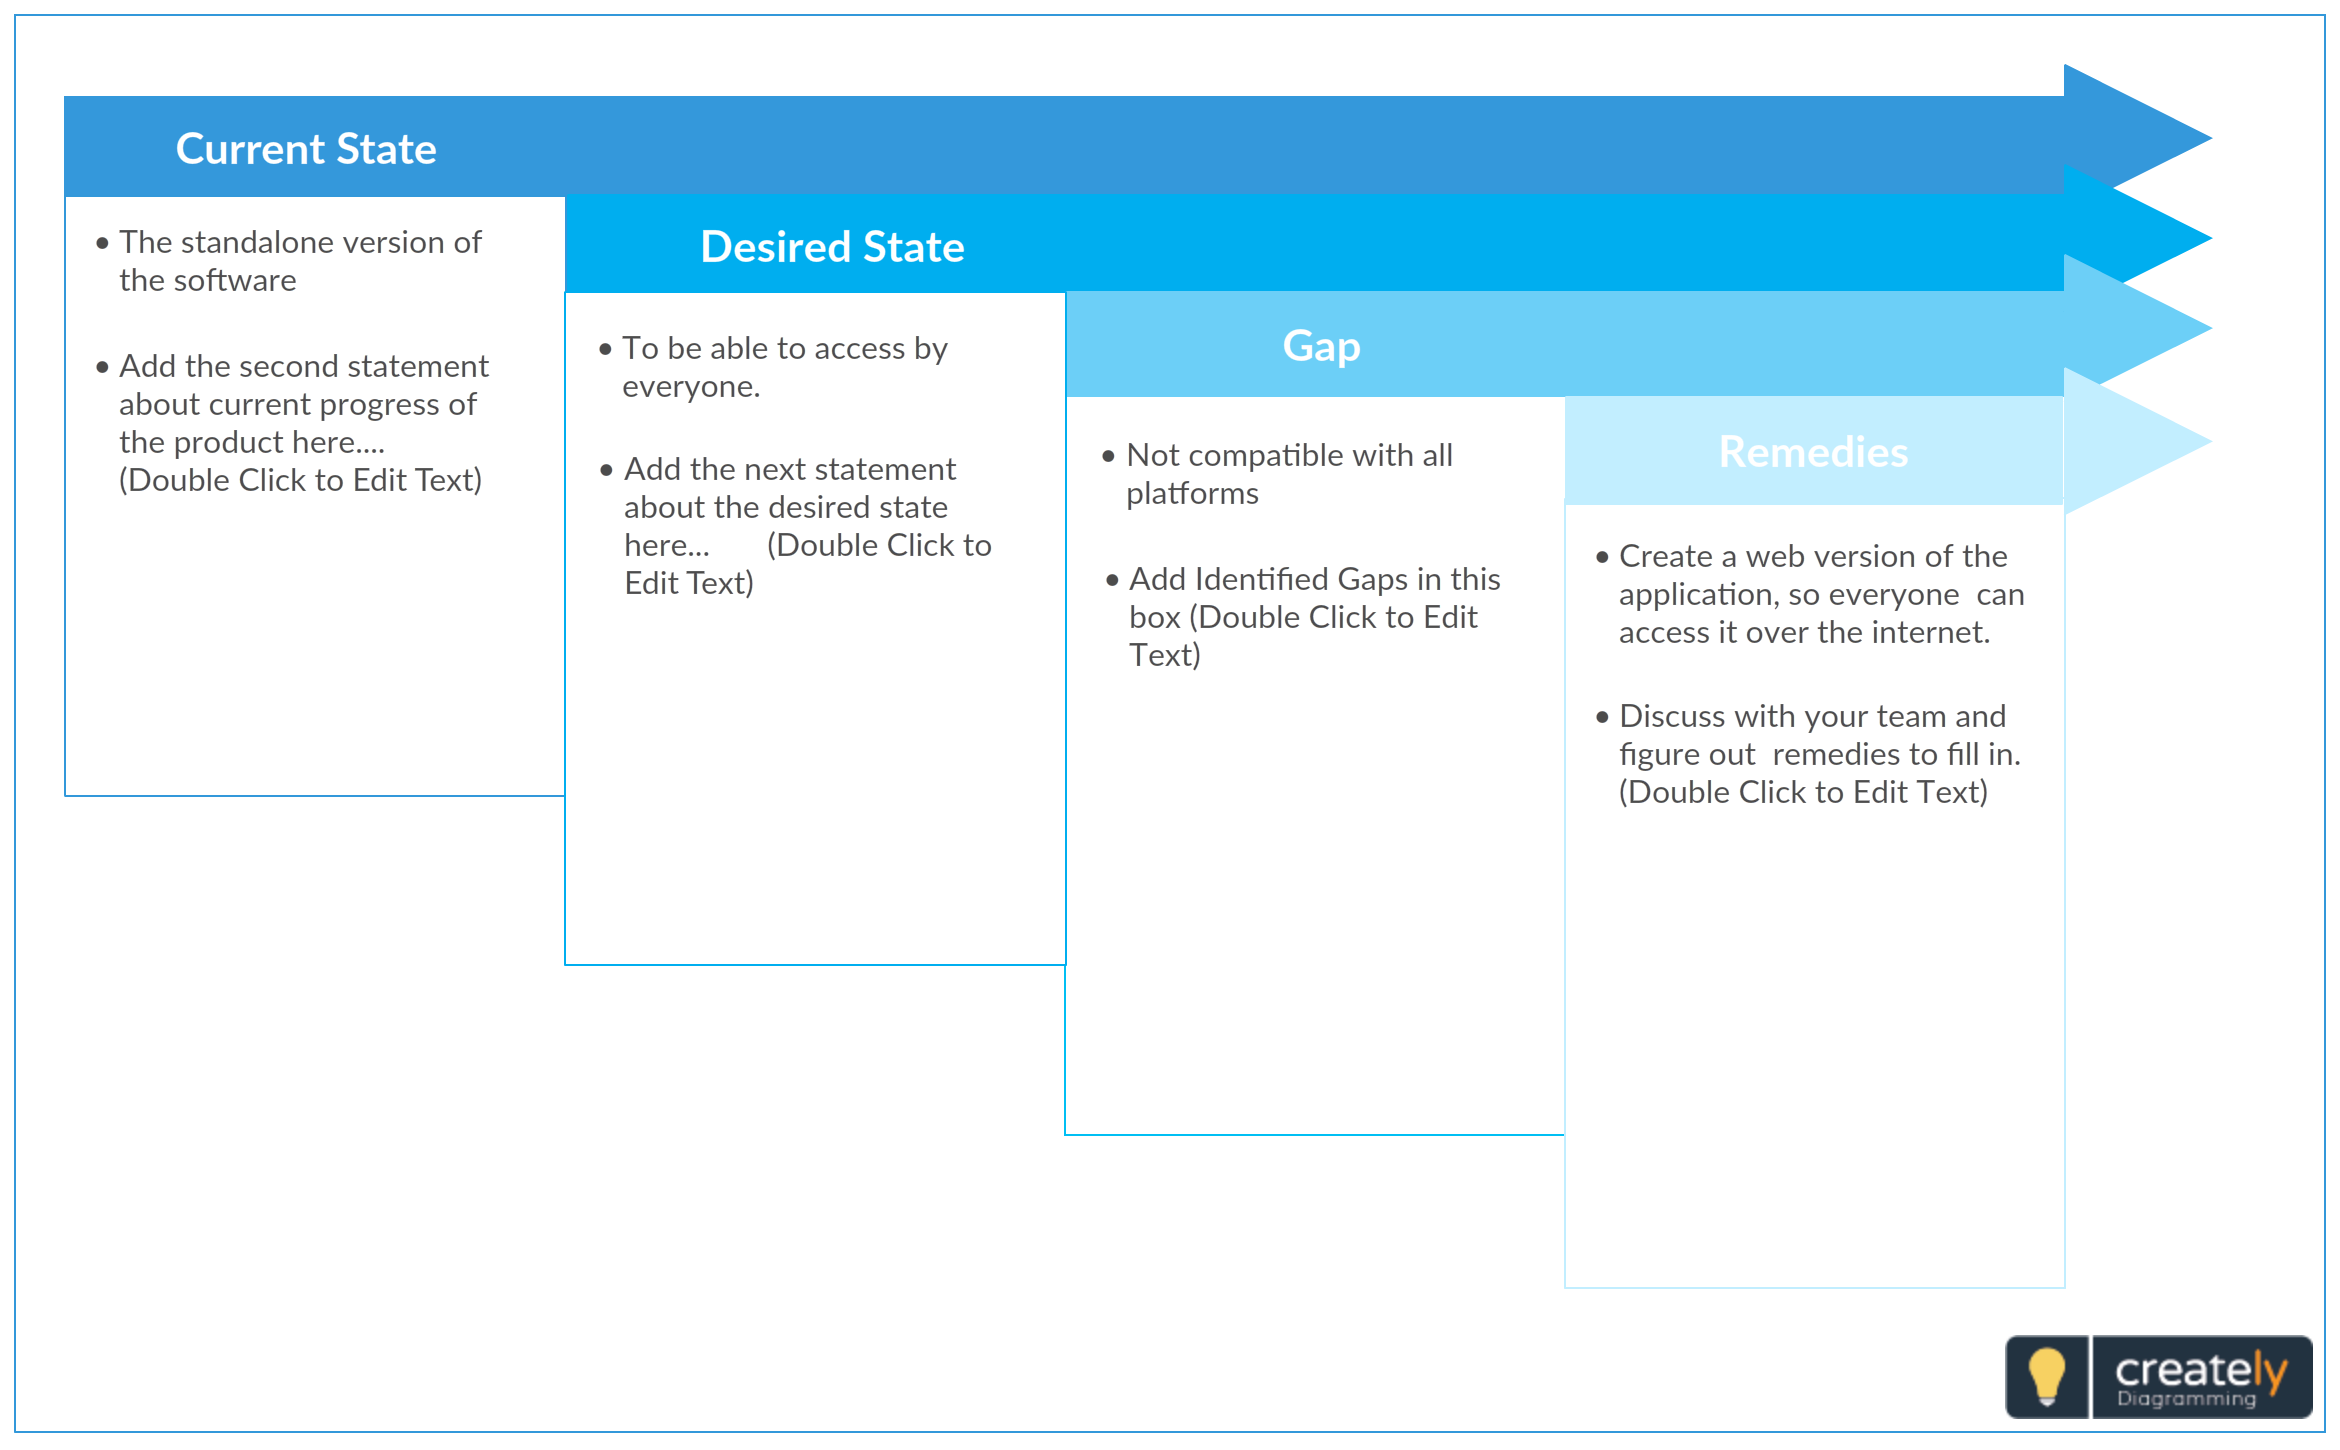 Product gap analysis template to identify the potential gaps in a product gap analysis template to identify the potential gaps in a product so that it can be improved use as template to edit and adding your product wajeb Image collections